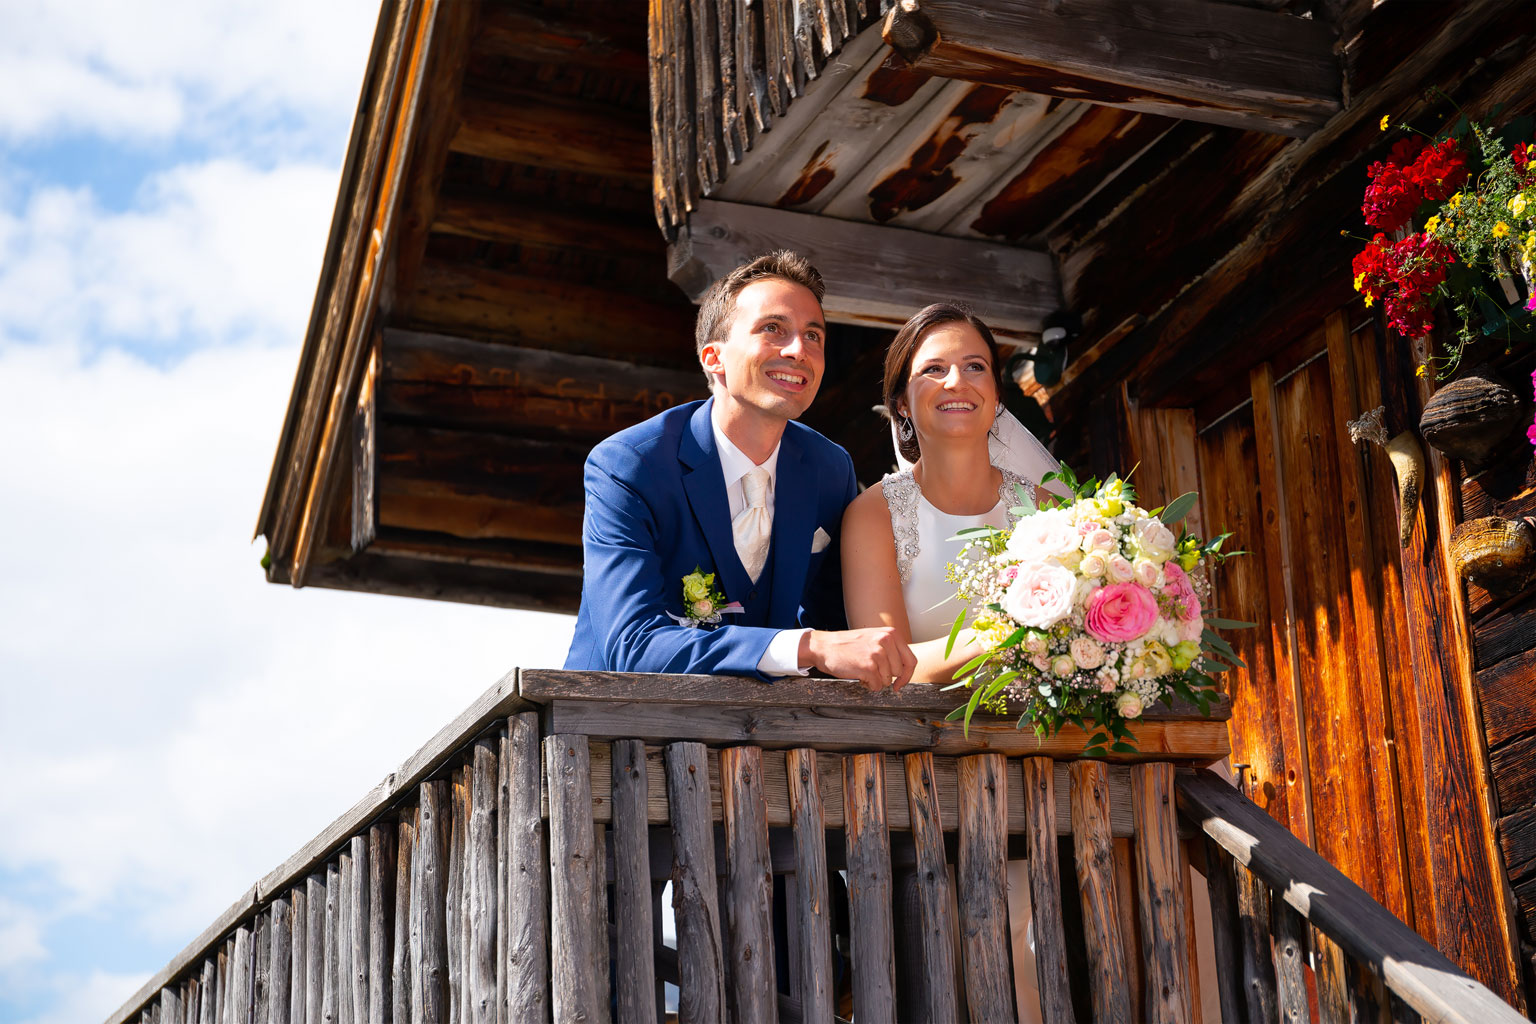 Bianca und Christoph am 15. September 2018